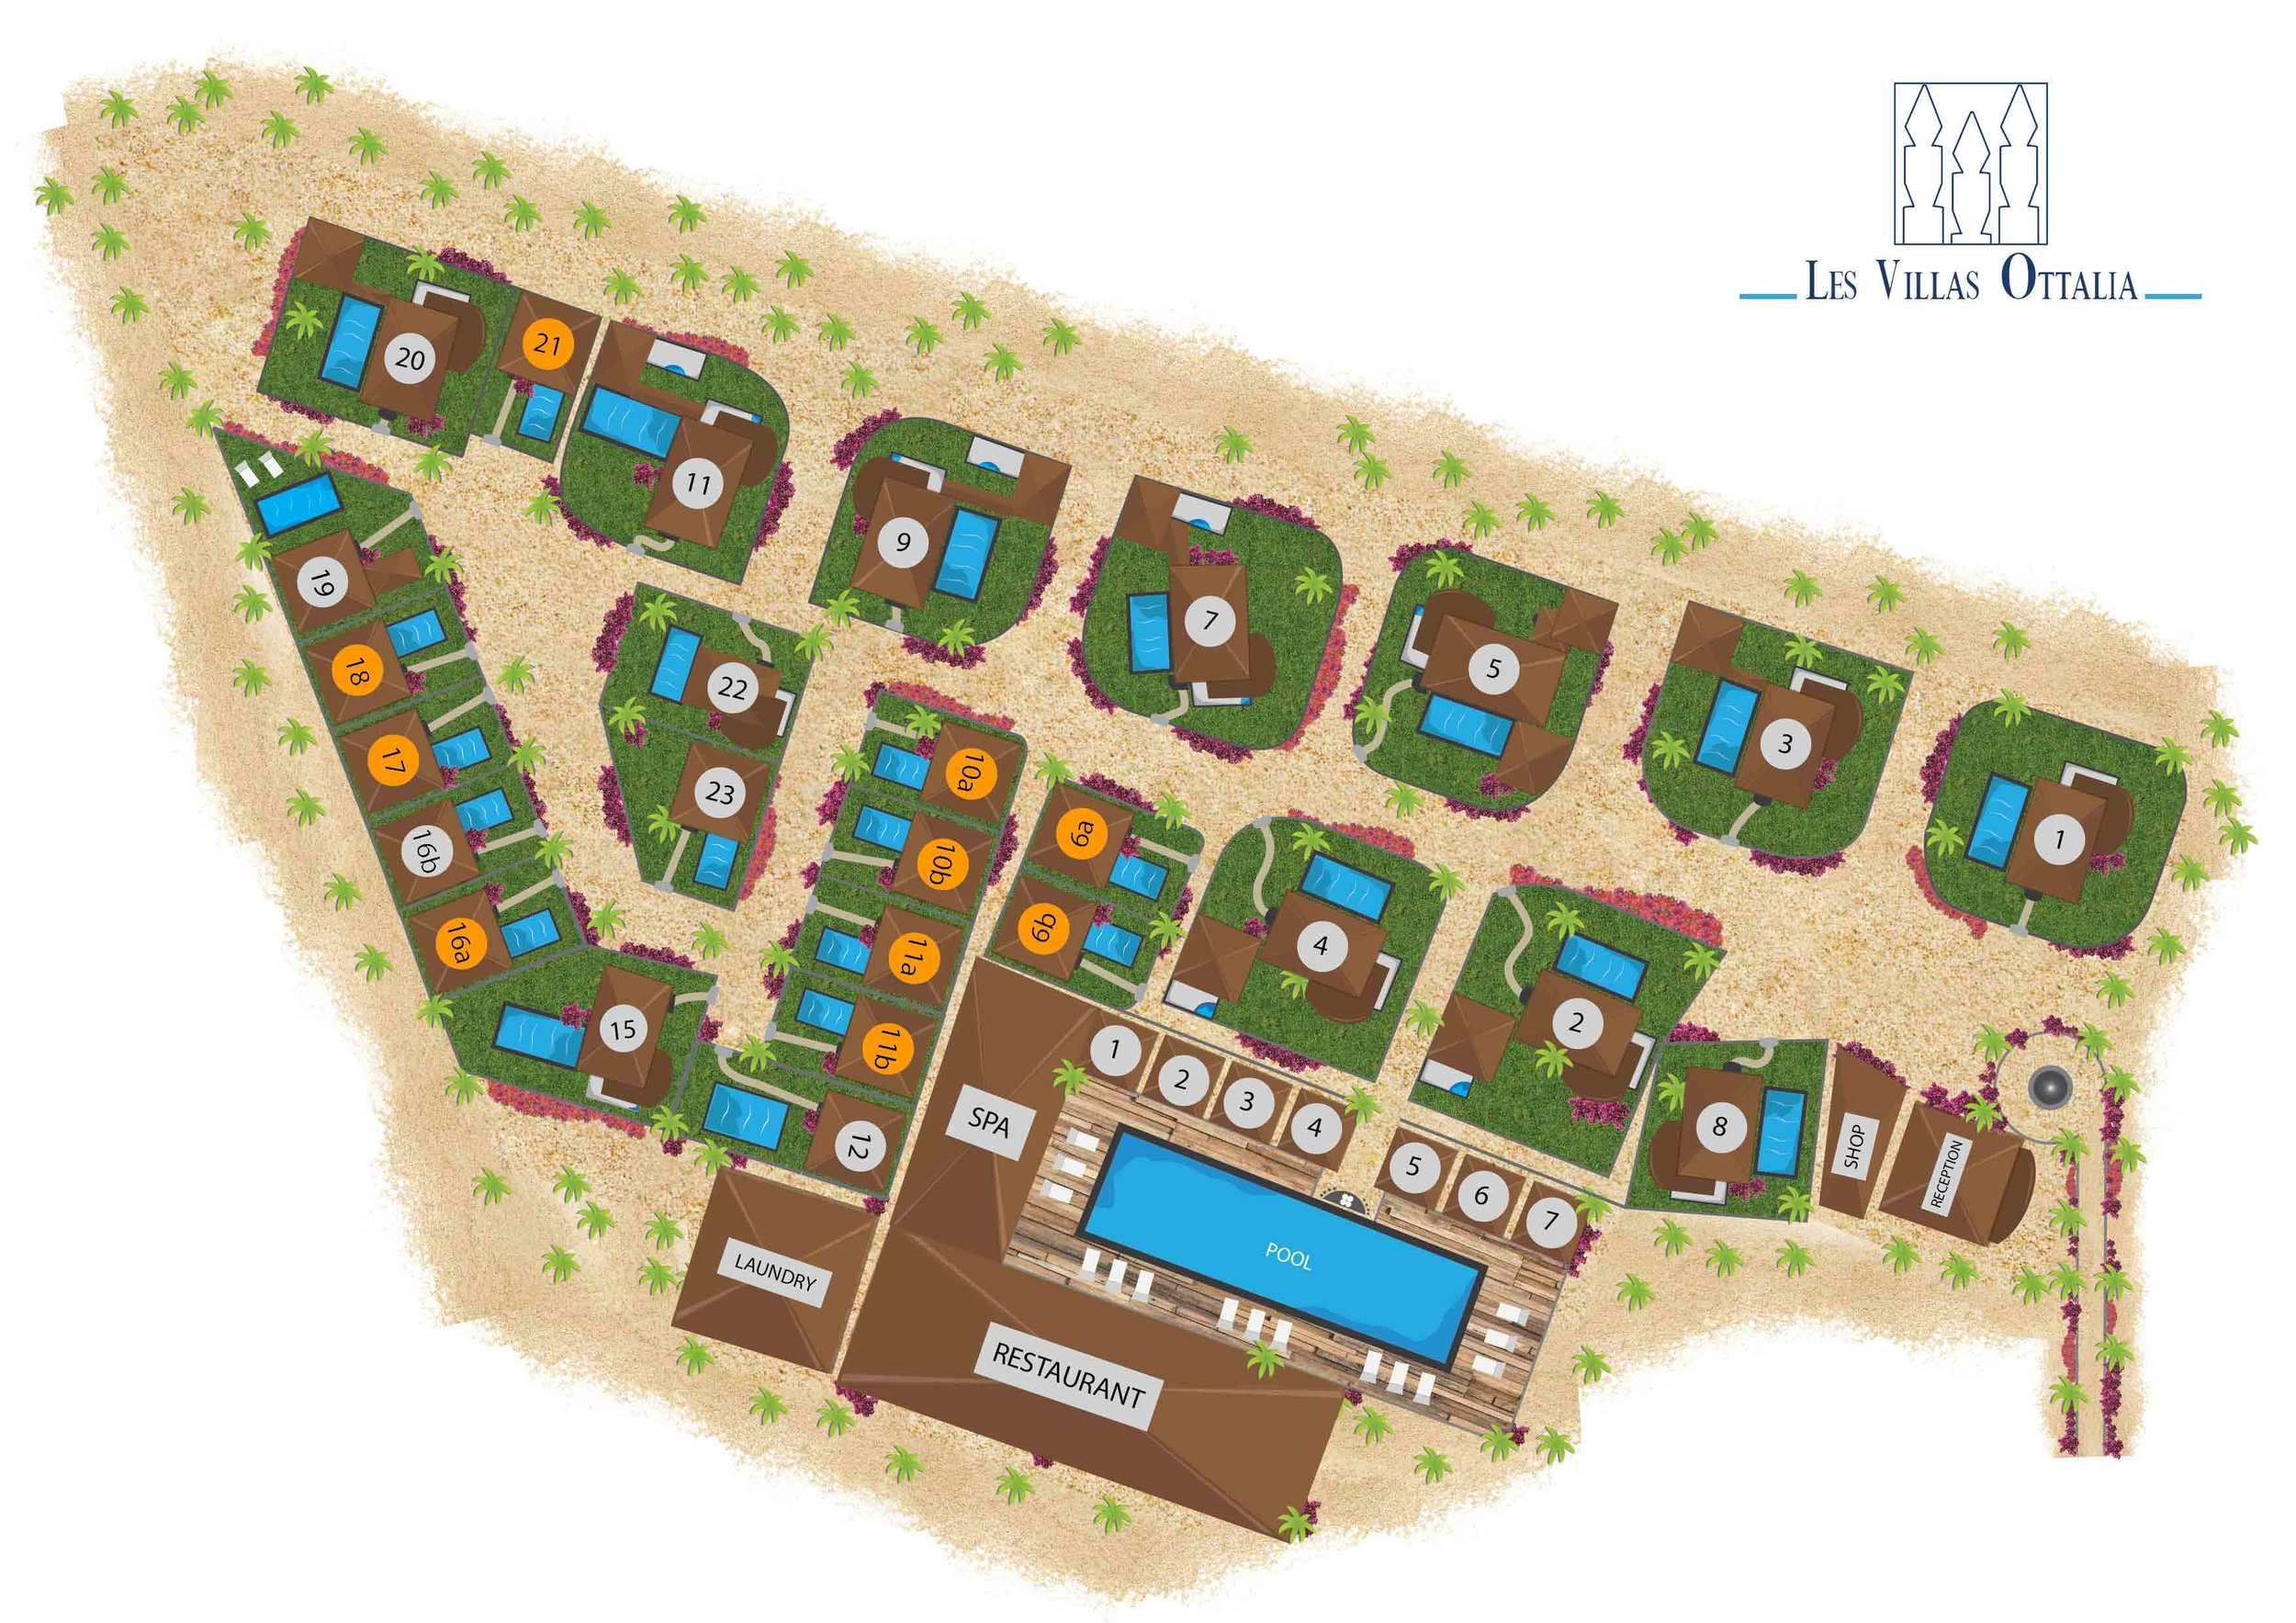 les_villas_ottalia_villa_resort_layout.jpg